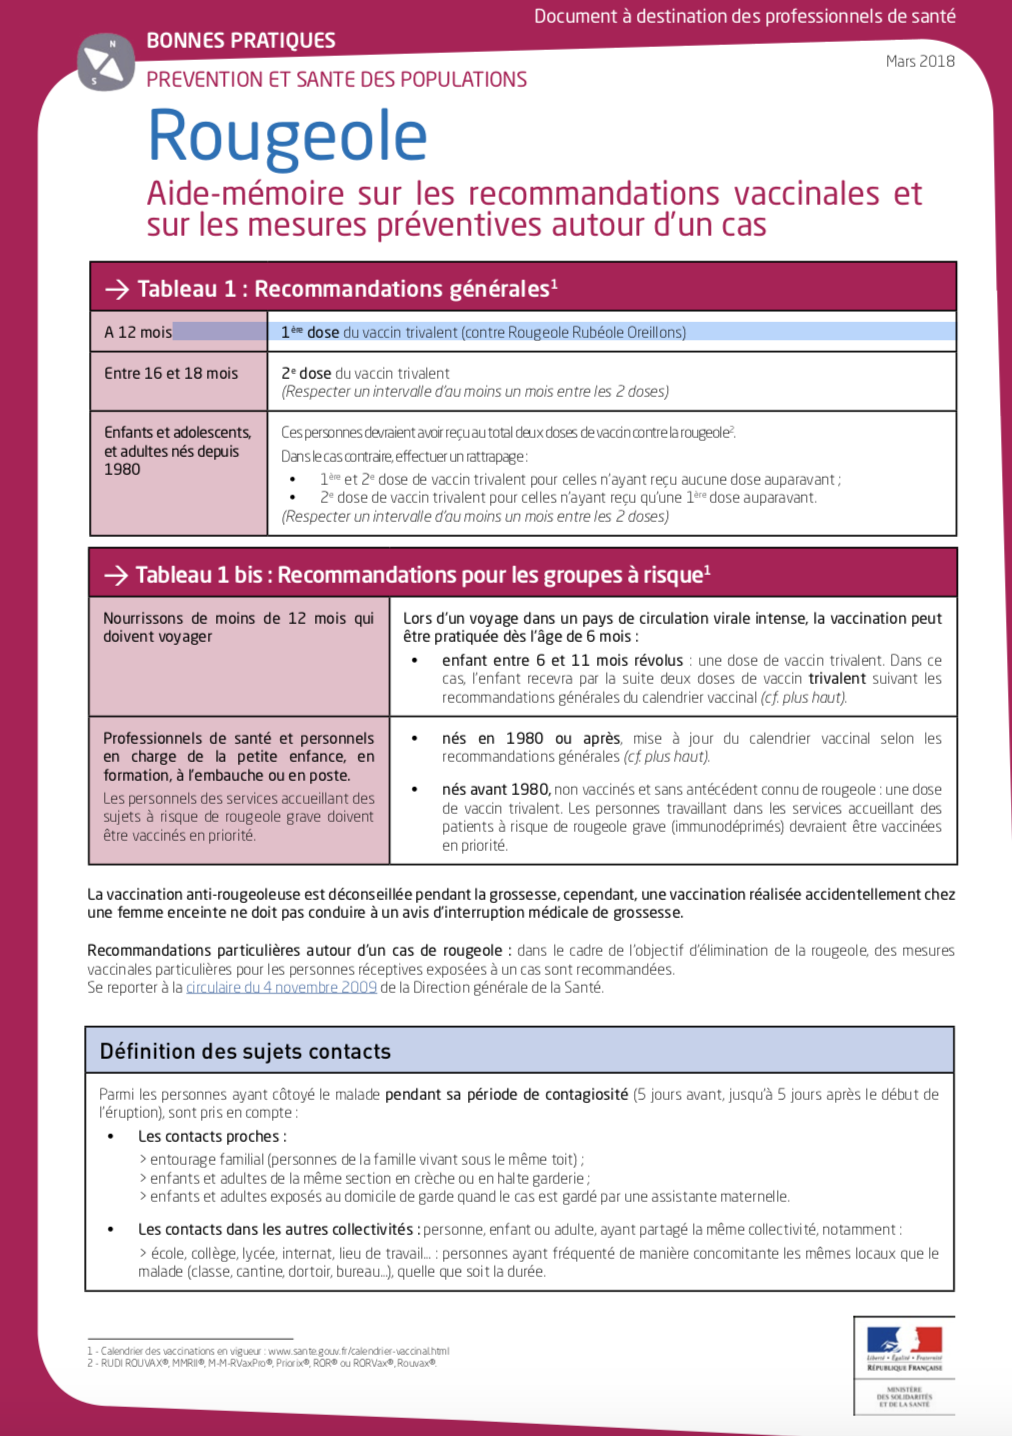 Calendrier Des Vaccinations Et Recommandations Vaccinales 2019.Rougeole A Mayotte Urps Infirmiers Ocean Indien